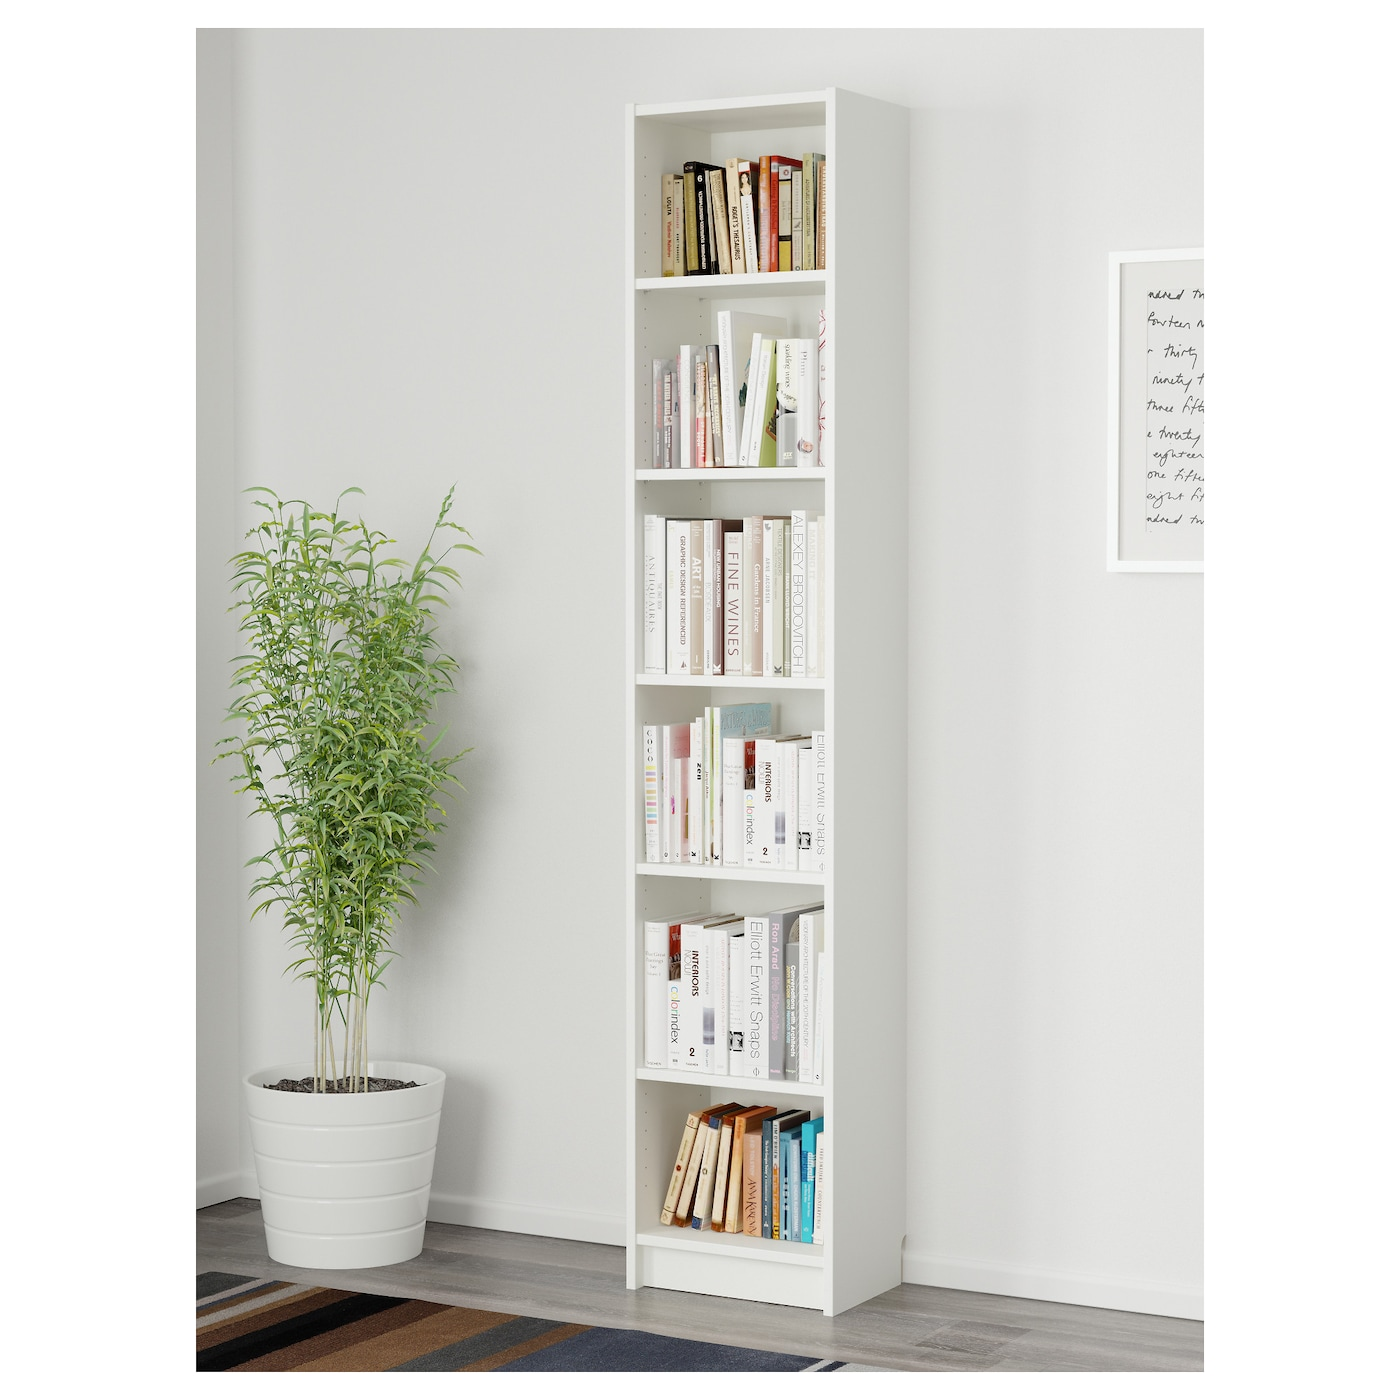 Image of: Billy Bookcase White 15 3 4x11x79 1 2 Ikea